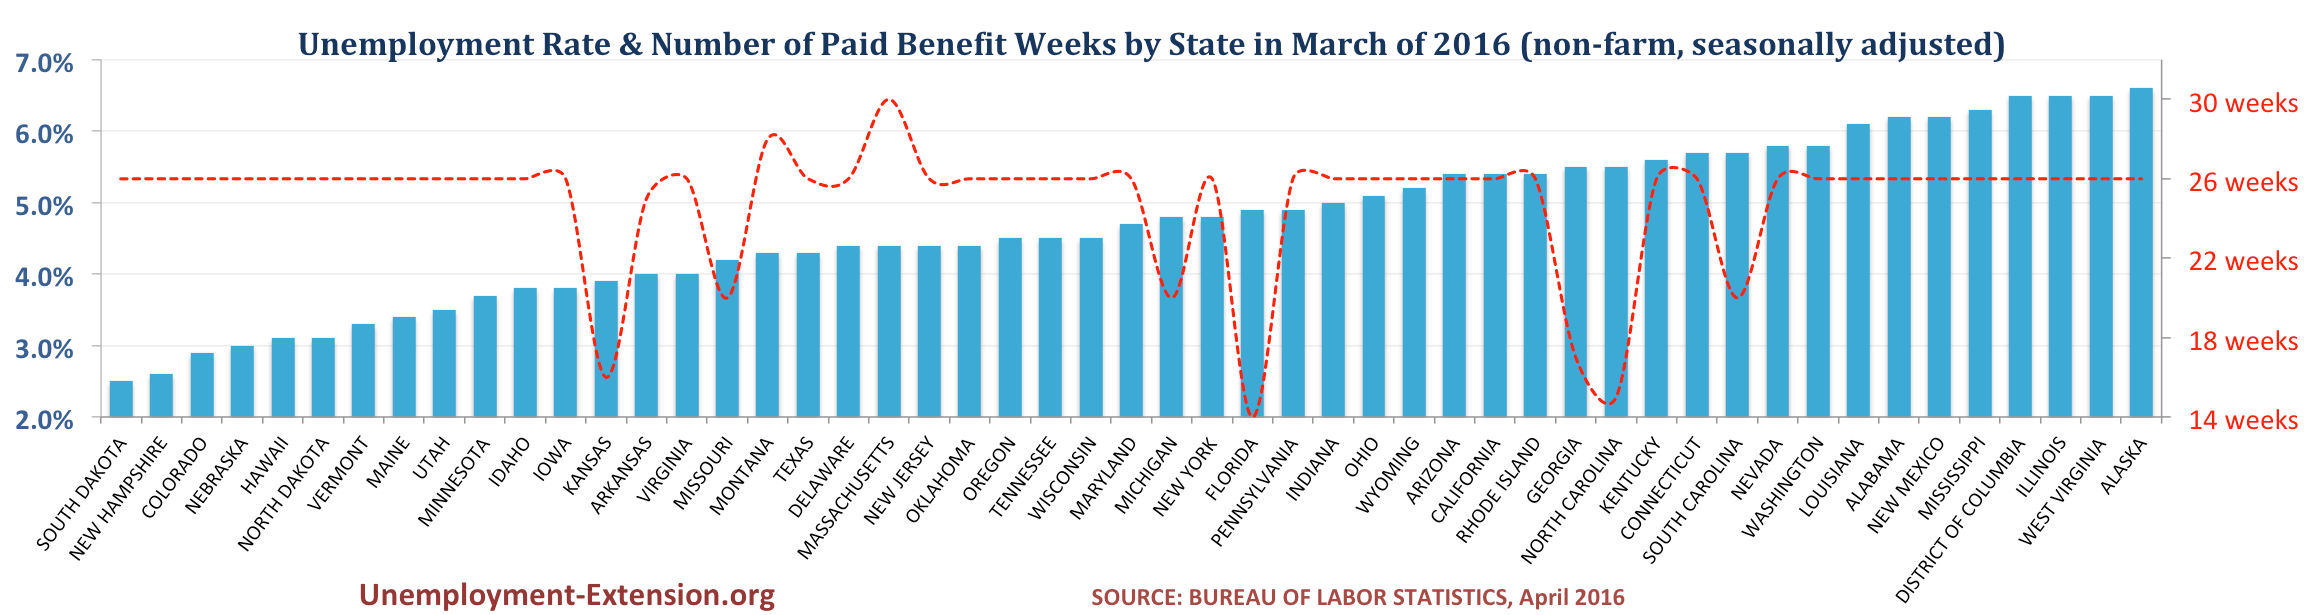 Unemployment Rate and Number of Paid Unemployment Benefit weeks by State (non-farm, seasonally adjusted) in March of 2016